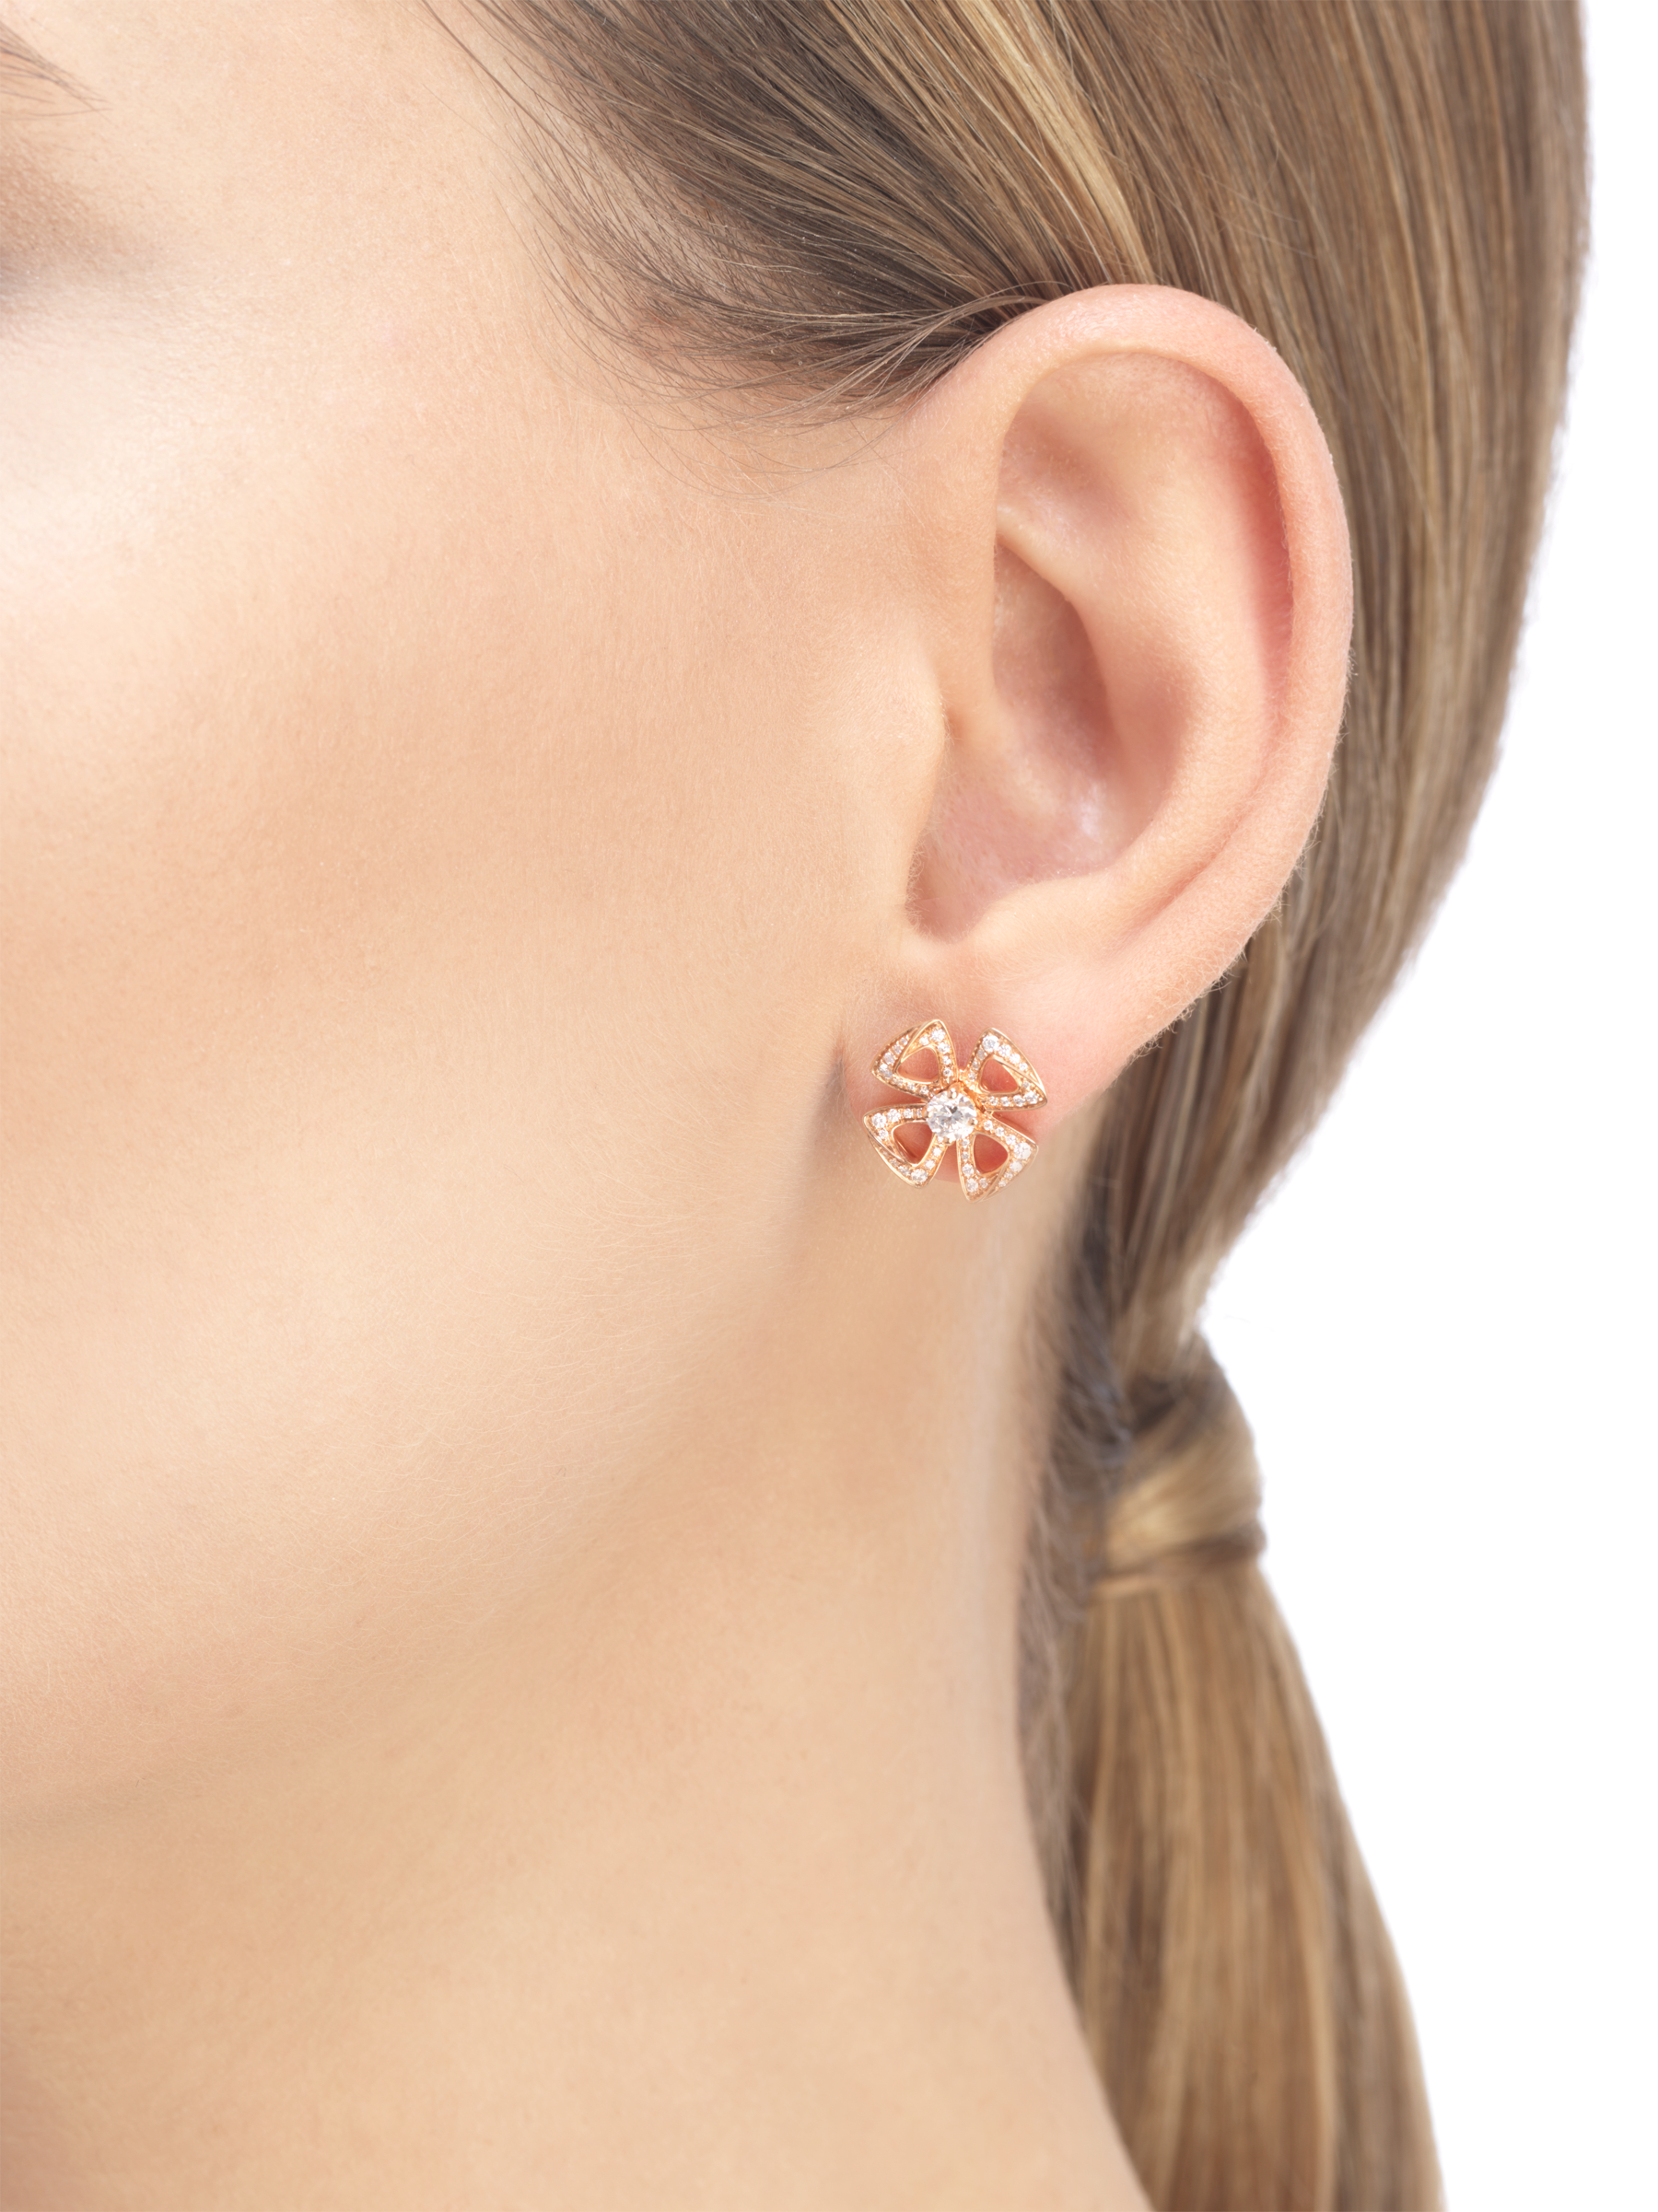 Fiorever 18 kt rose gold earrings, set with two central diamonds and pavé diamonds. 355887 image 4